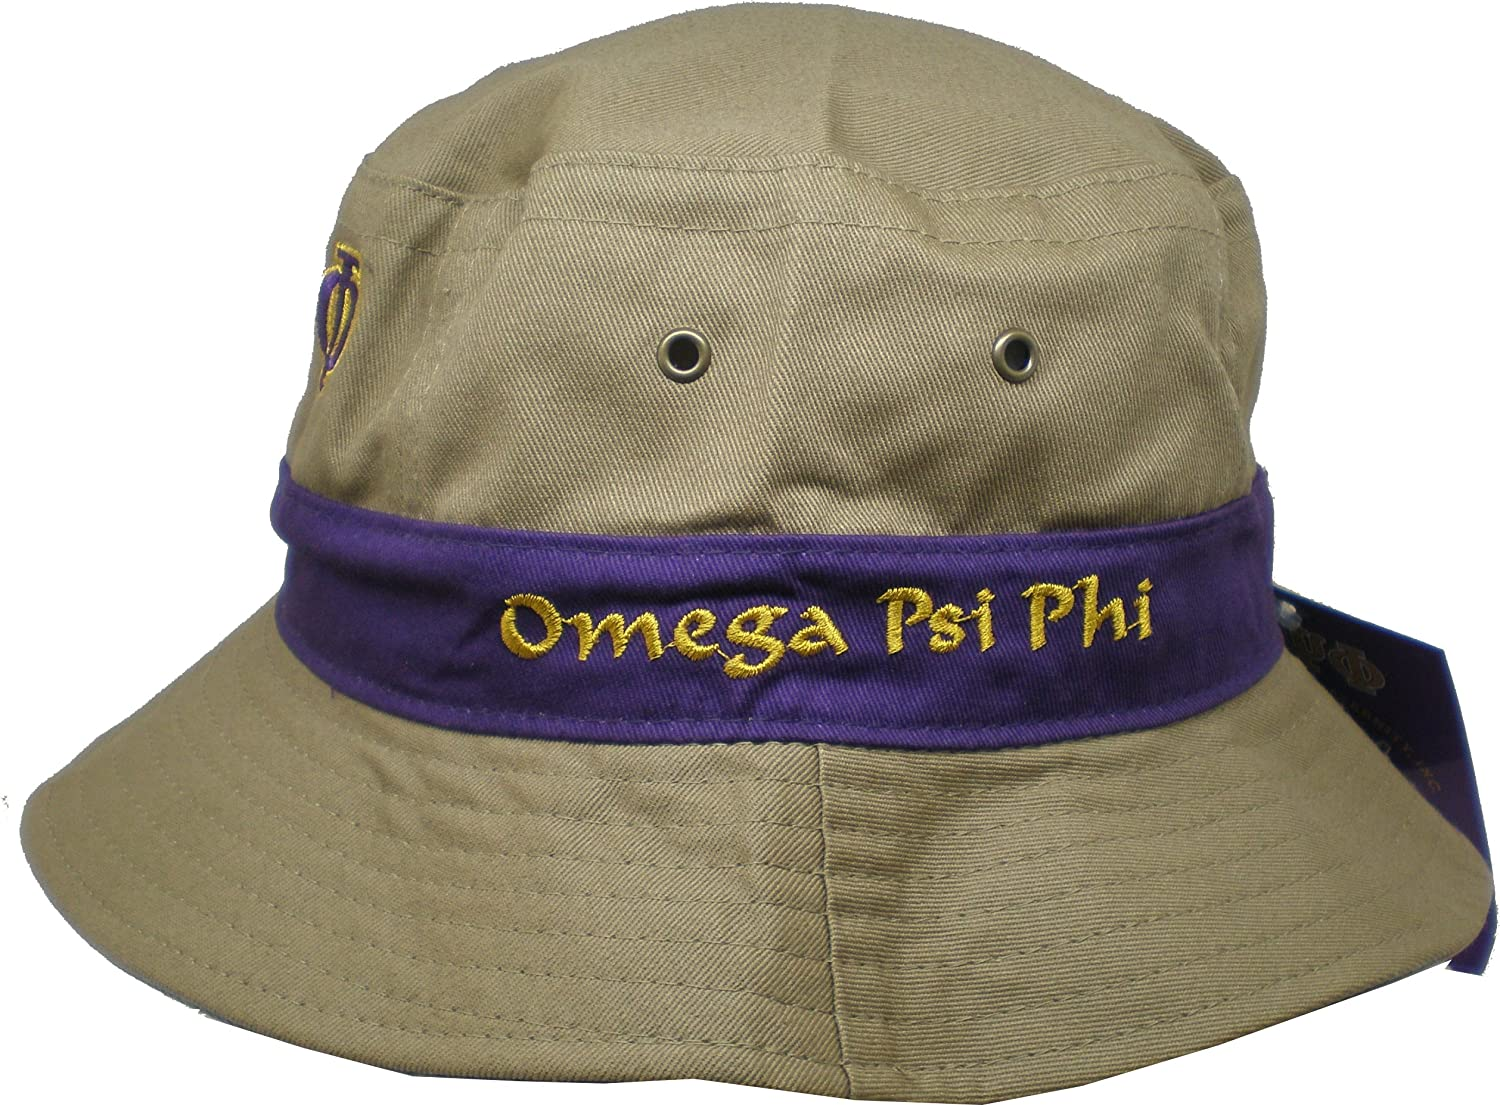 17ad8c09326 Cultural exchange omega psi phi fraternity mens floppy bucket hat khaki  clothing jpg 1500x1105 Omega psi